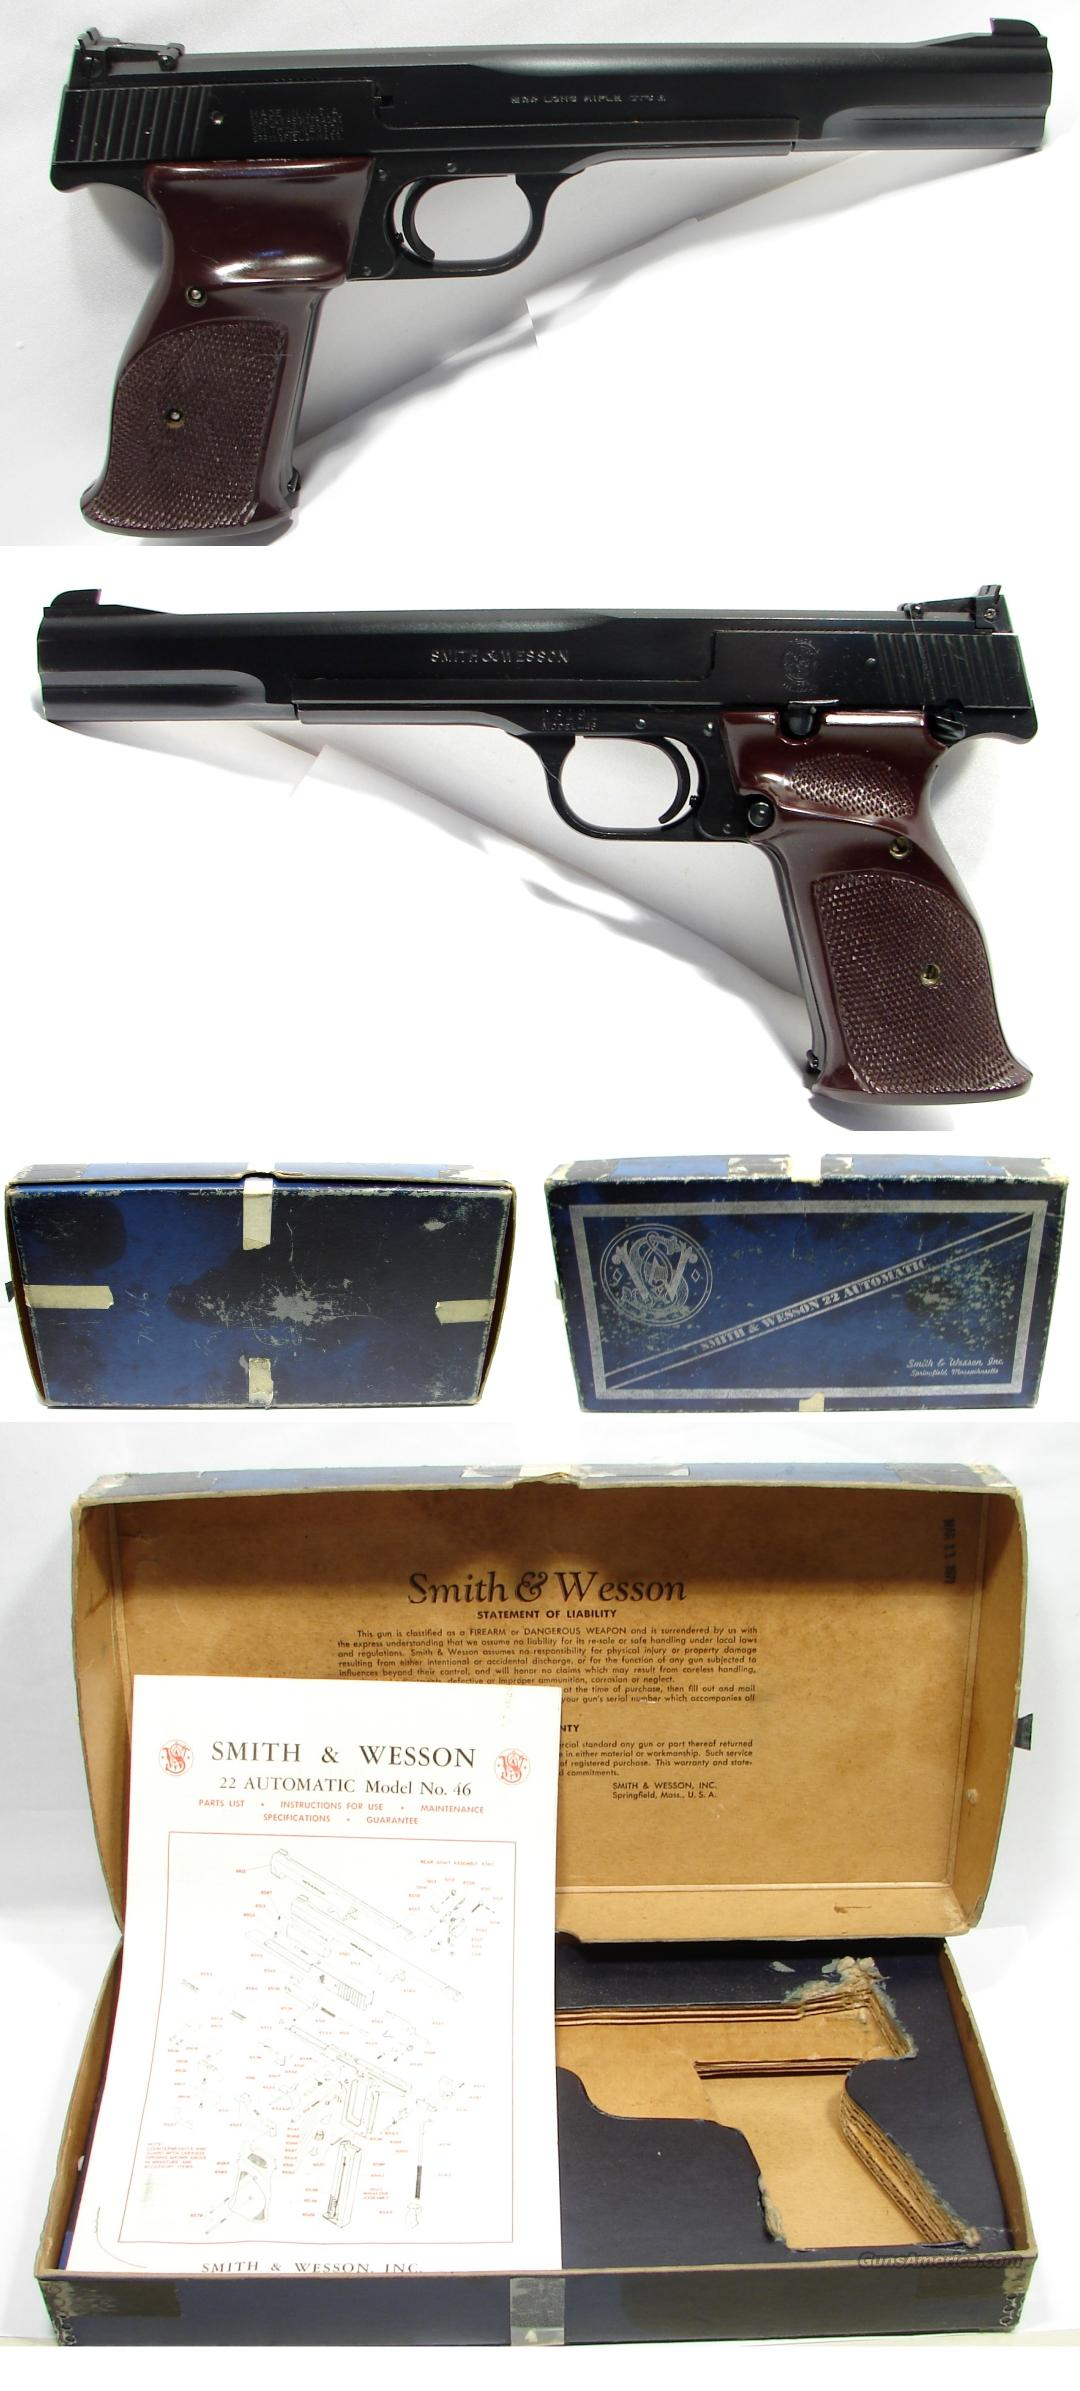 "Smith & Wesson Model 46 - 7"" With Factory Box!!  Guns > Pistols > Smith & Wesson Pistols - Autos > .22 Autos"